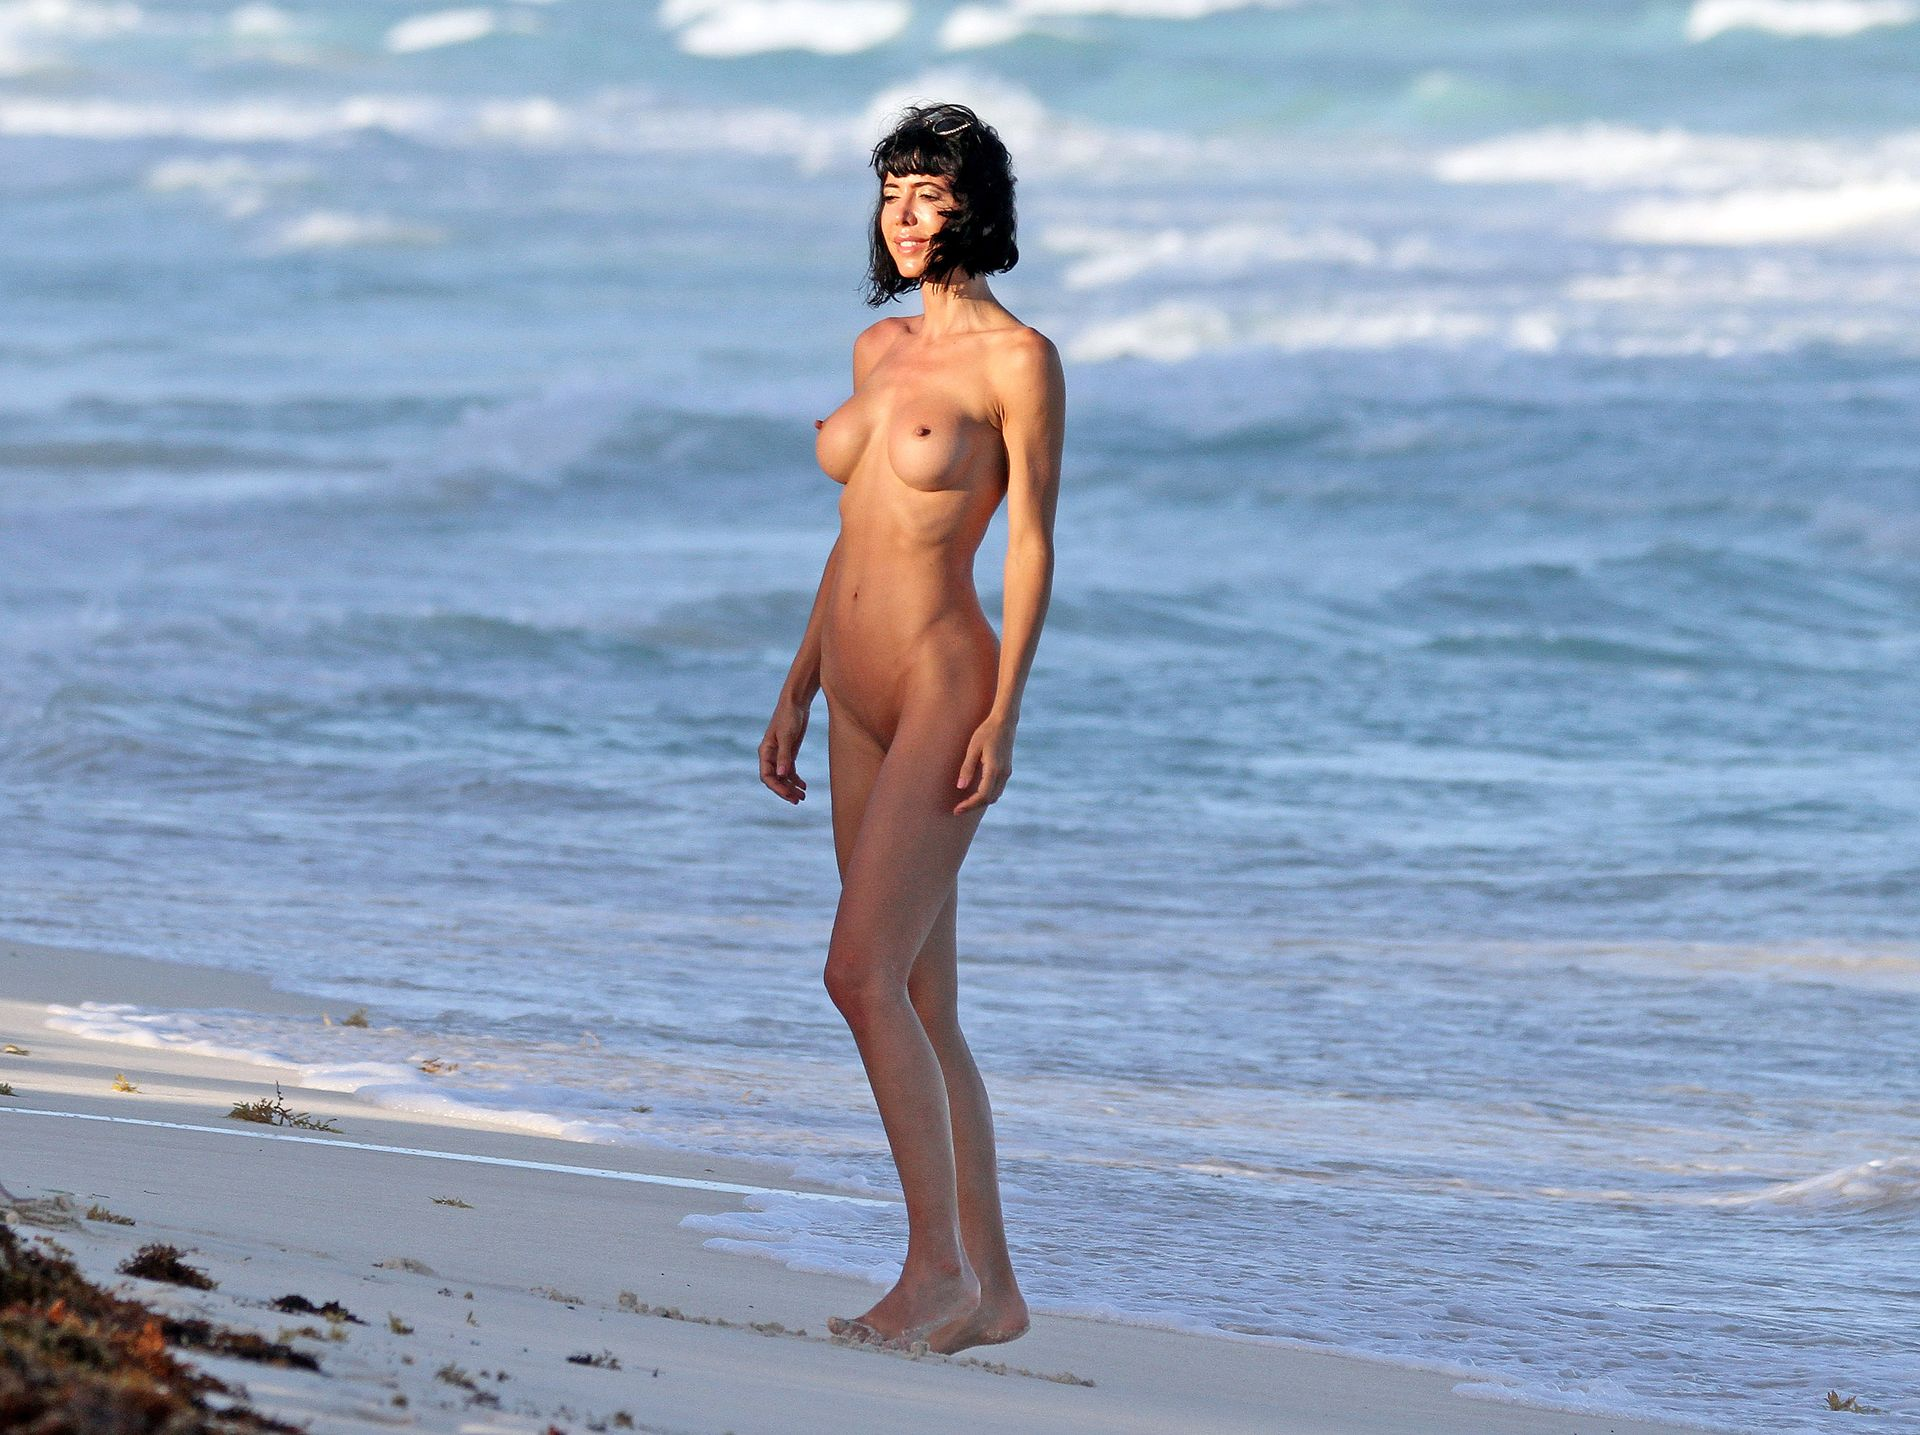 Milo-Moir-Nude-The-Fappening-Blog-6